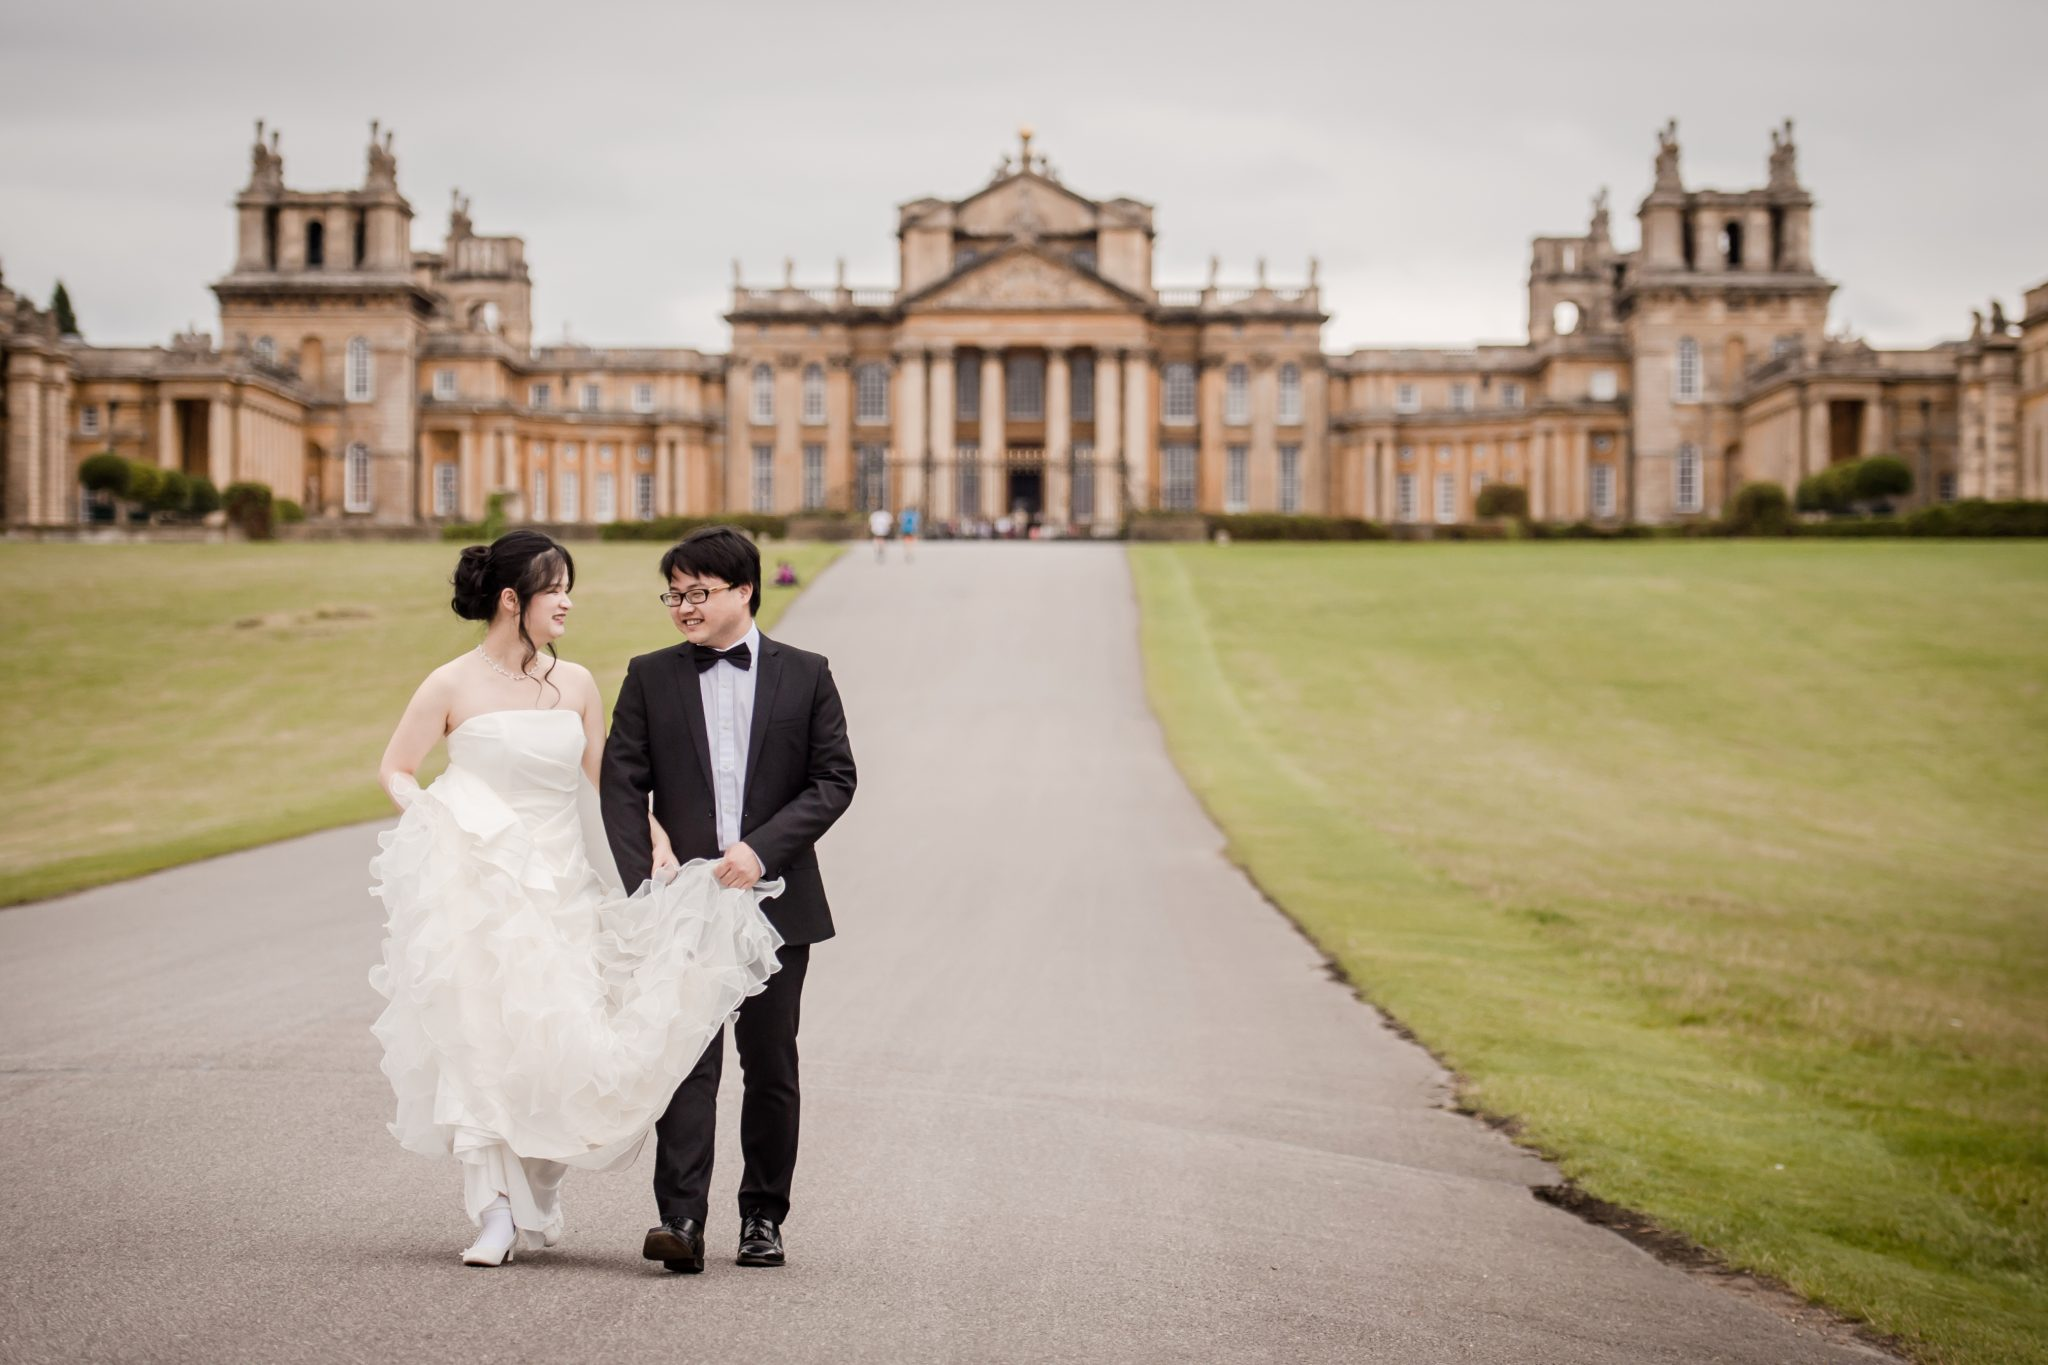 Aristocrats get ready for wedding at Blenheim Palace ...